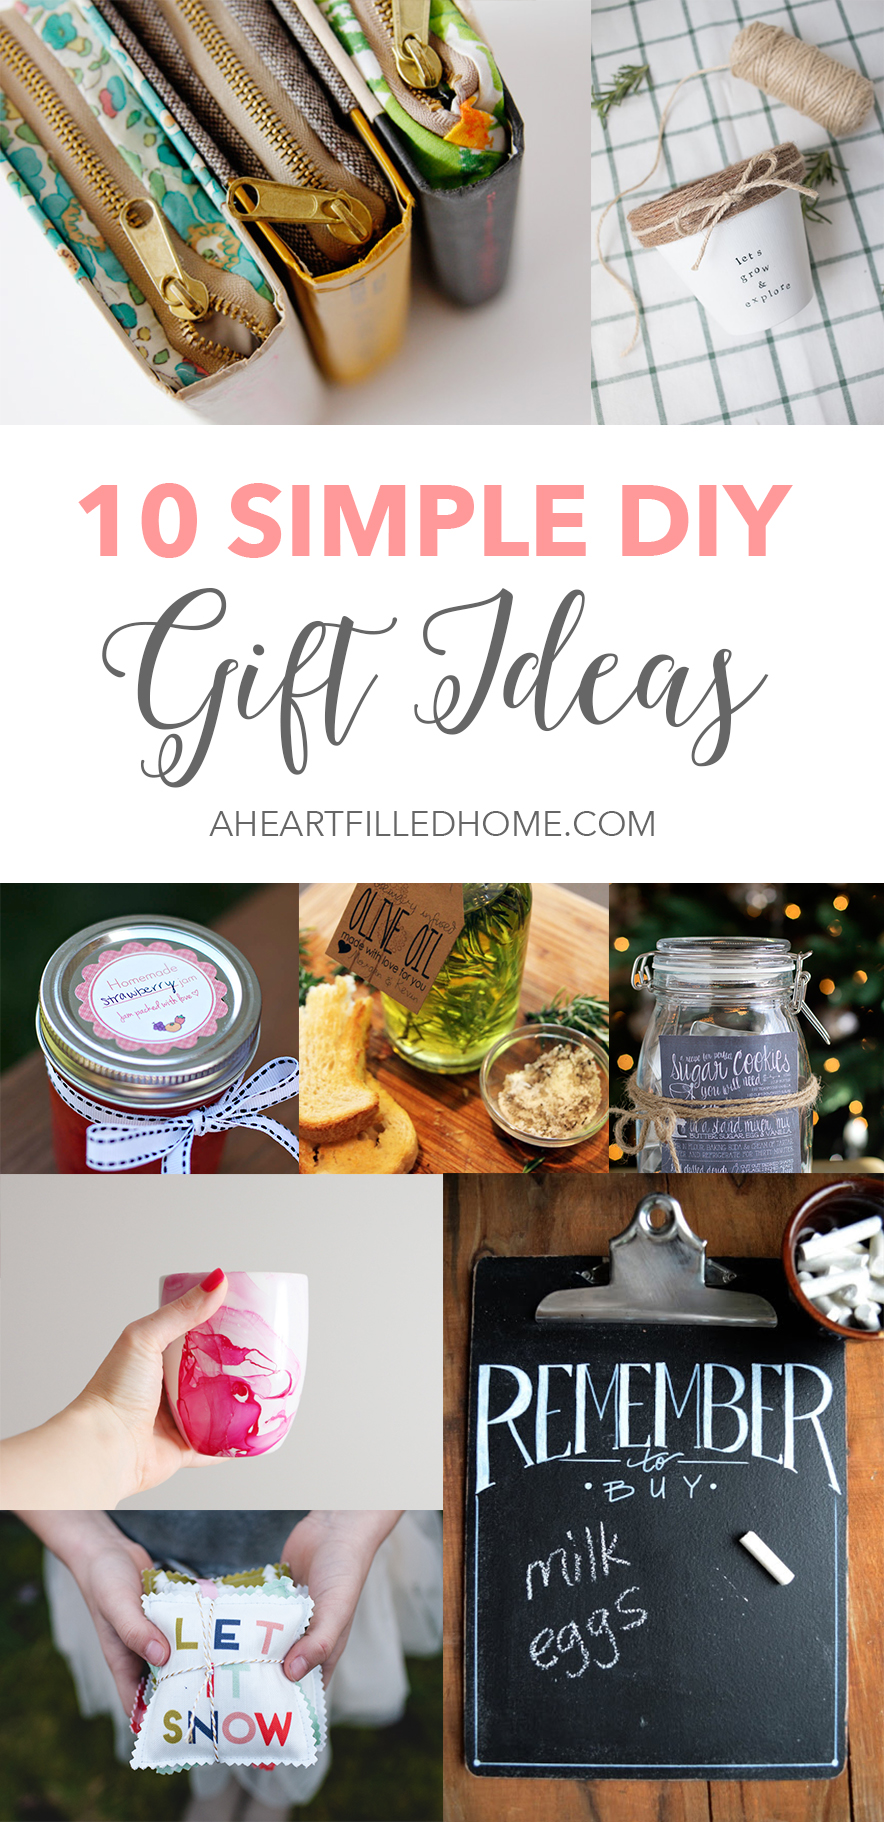 10 Simple DIY Gift Ideas from A Heart Filled Home.